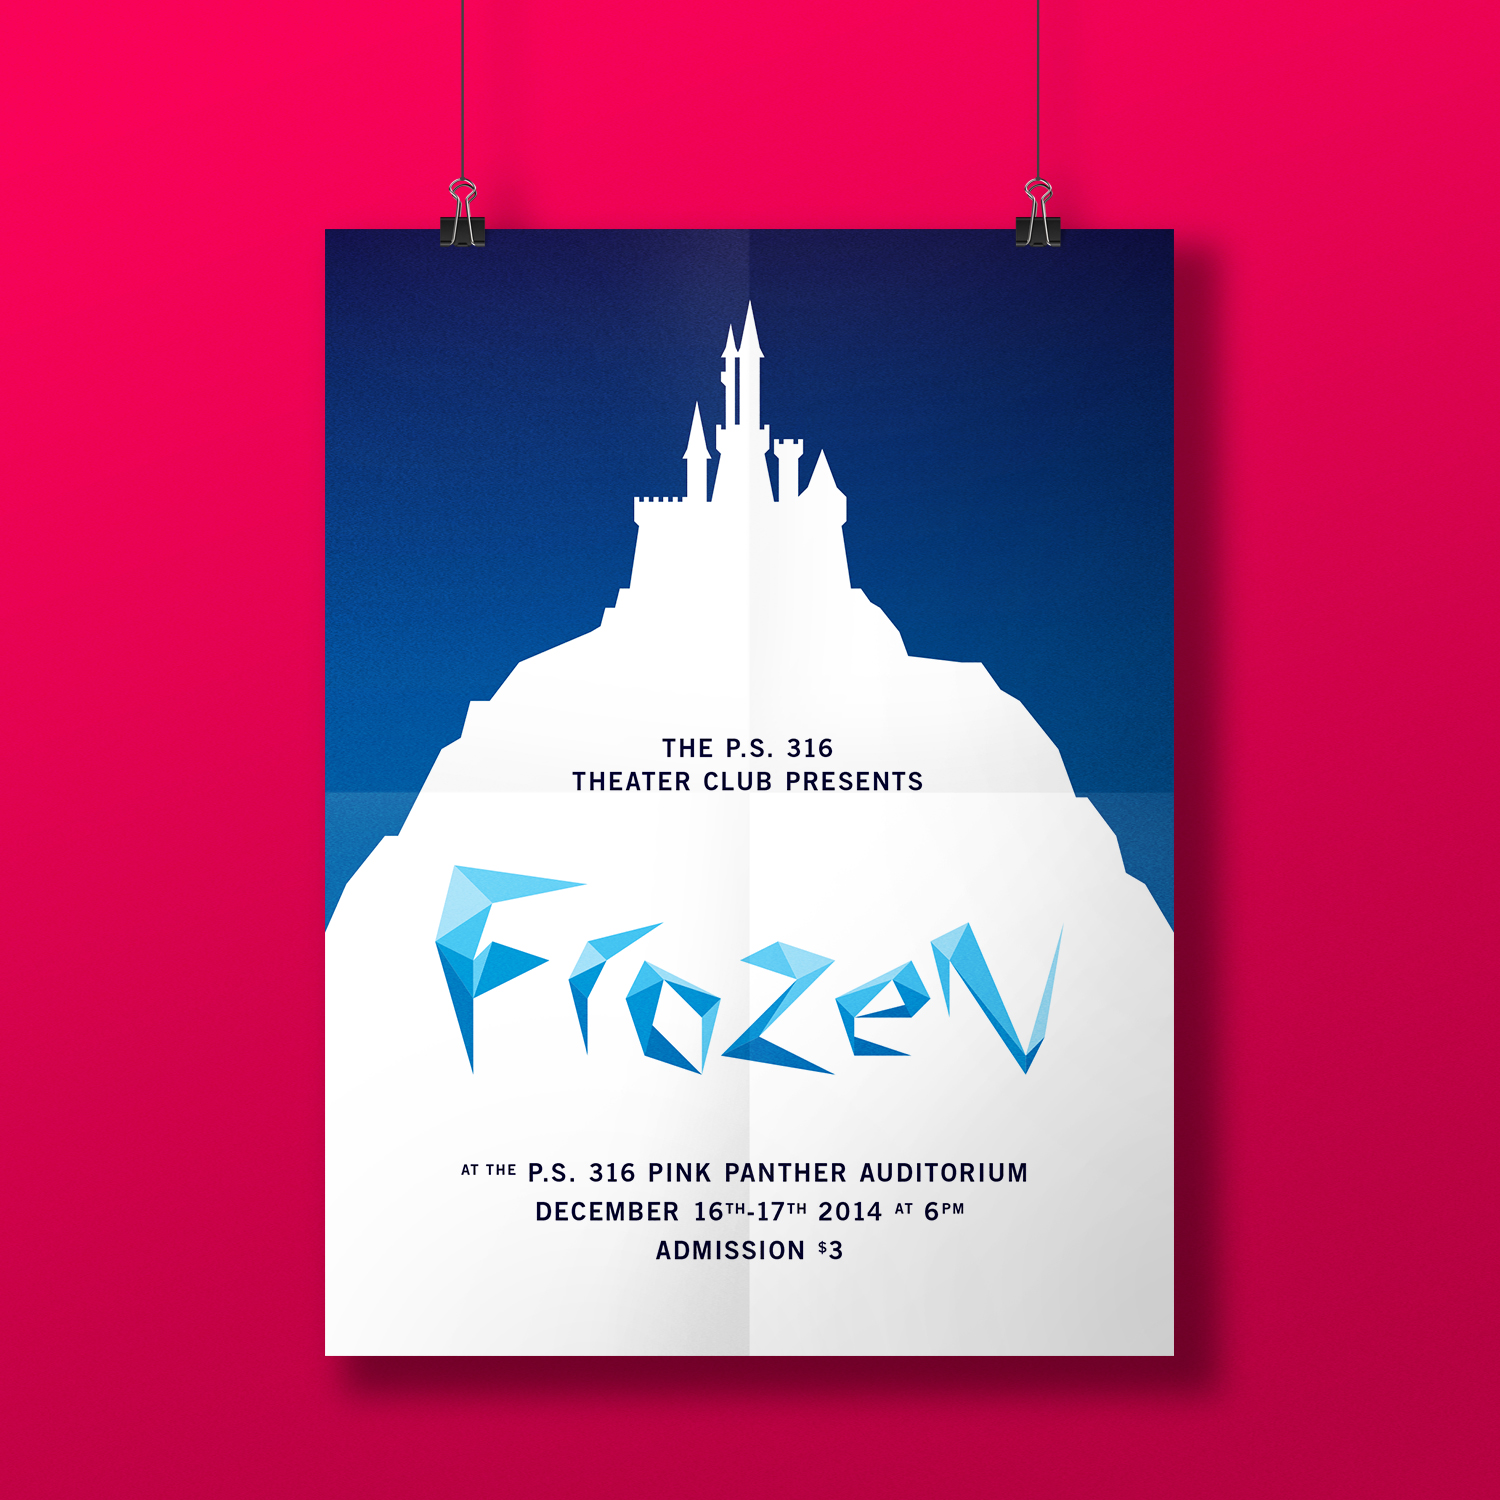 Poster - The same grid that I used for the logo and characters also informed an illustration for the castle that is Anna's home in Frozen. It worked really well for a poster promoting the production.